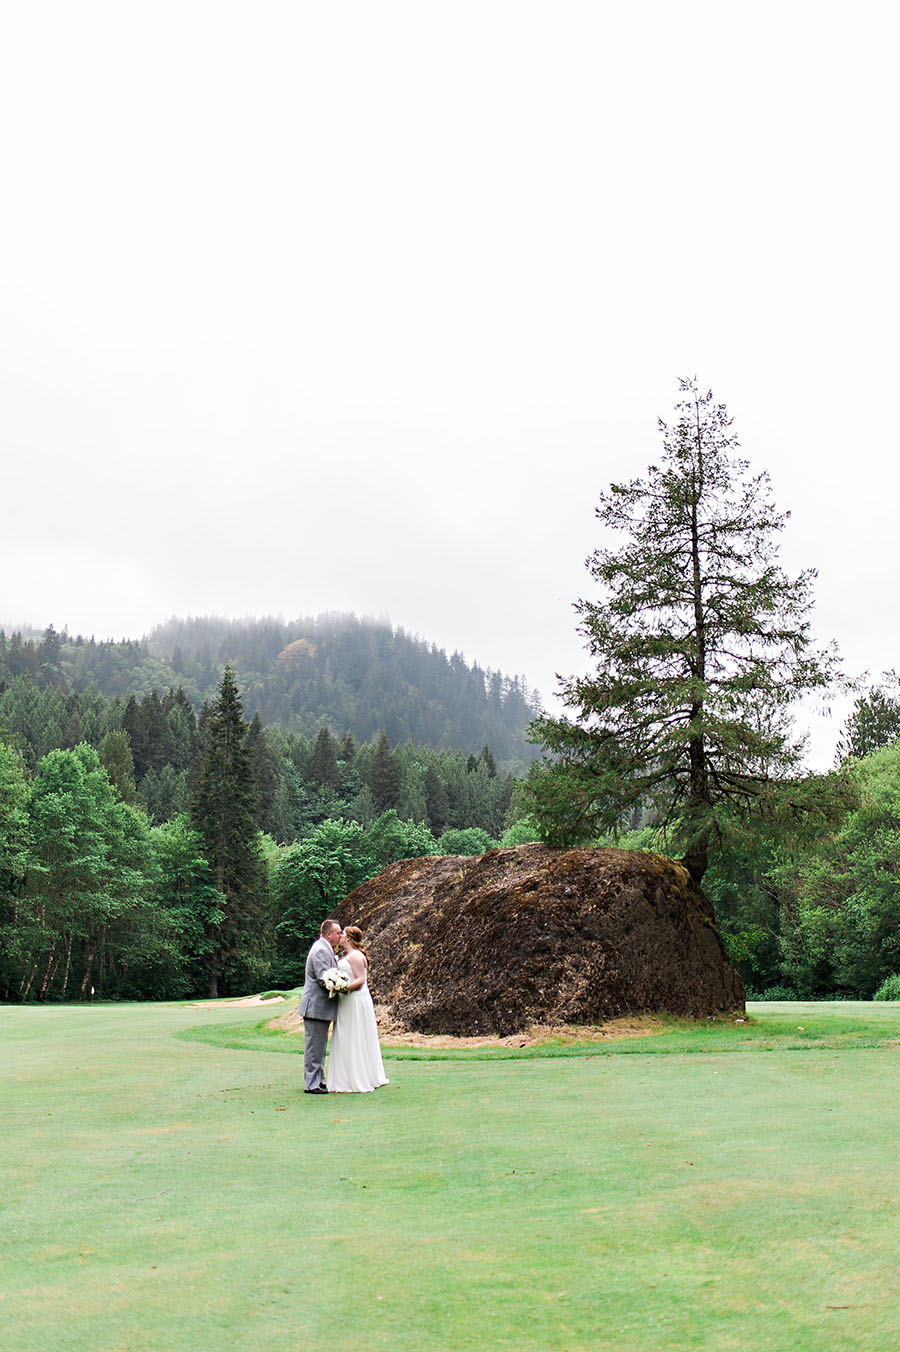 The Resort at The mountain Wedding Photo